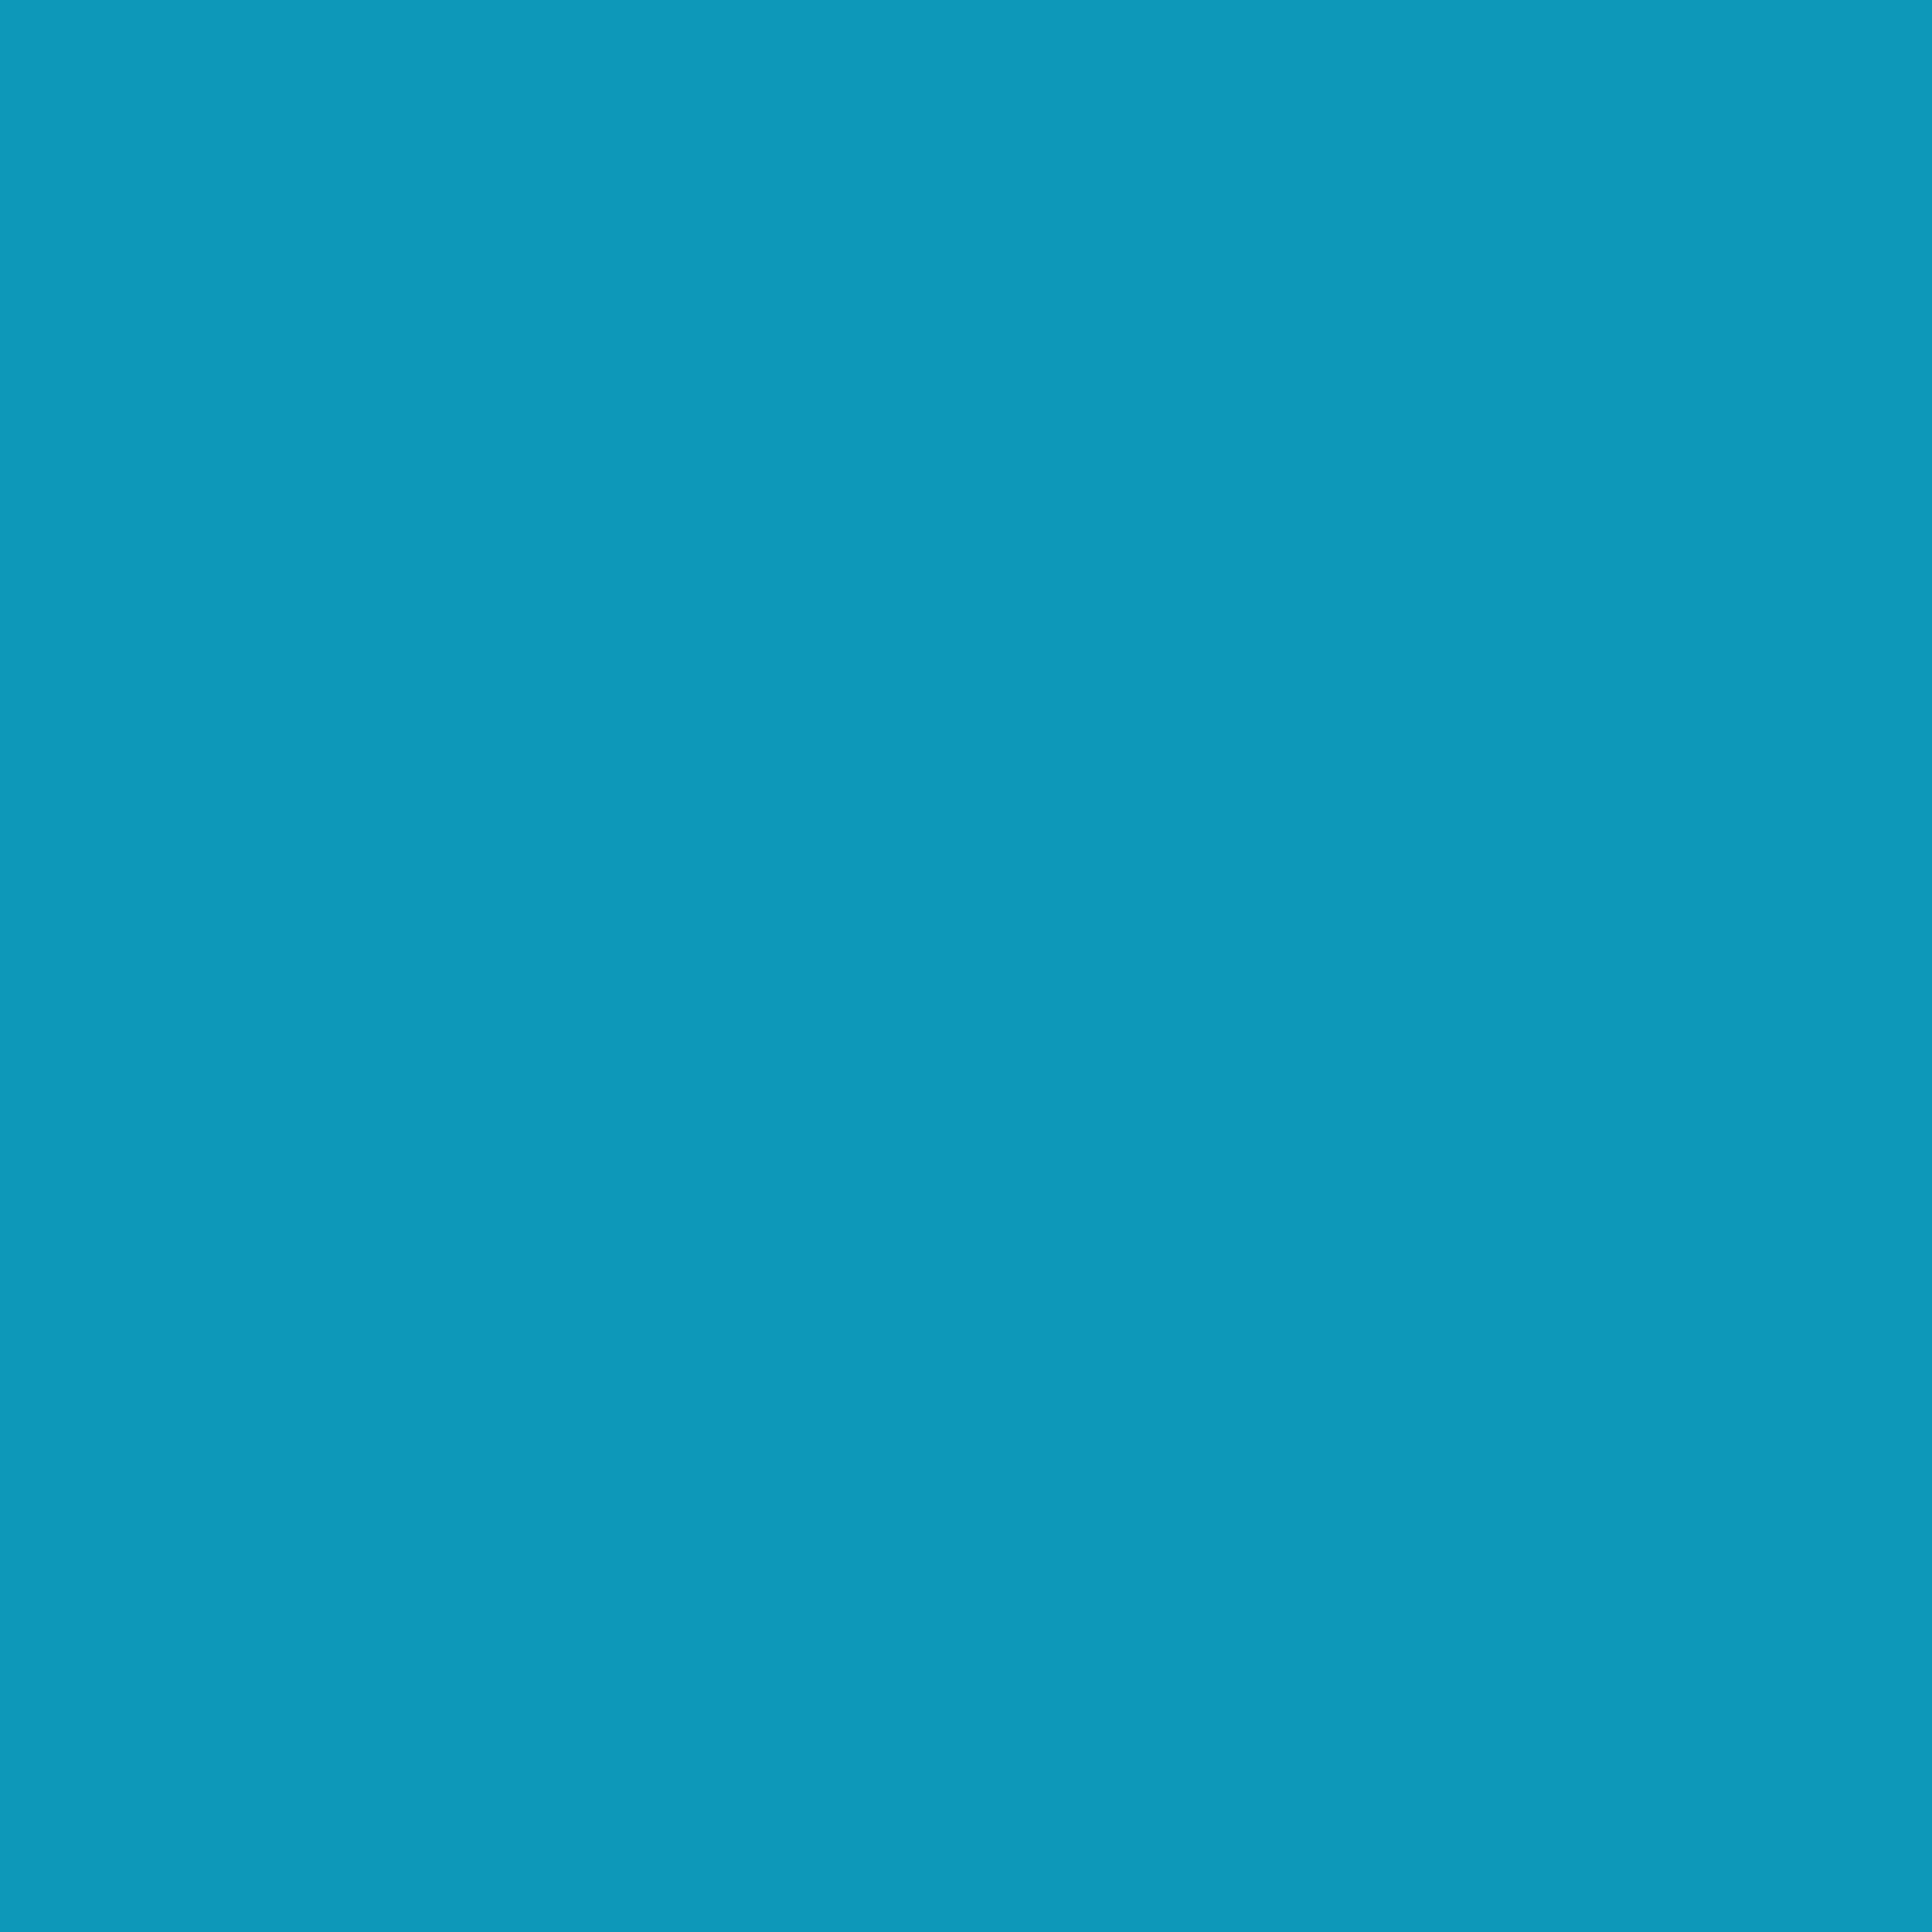 3600x3600 Blue-green Solid Color Background